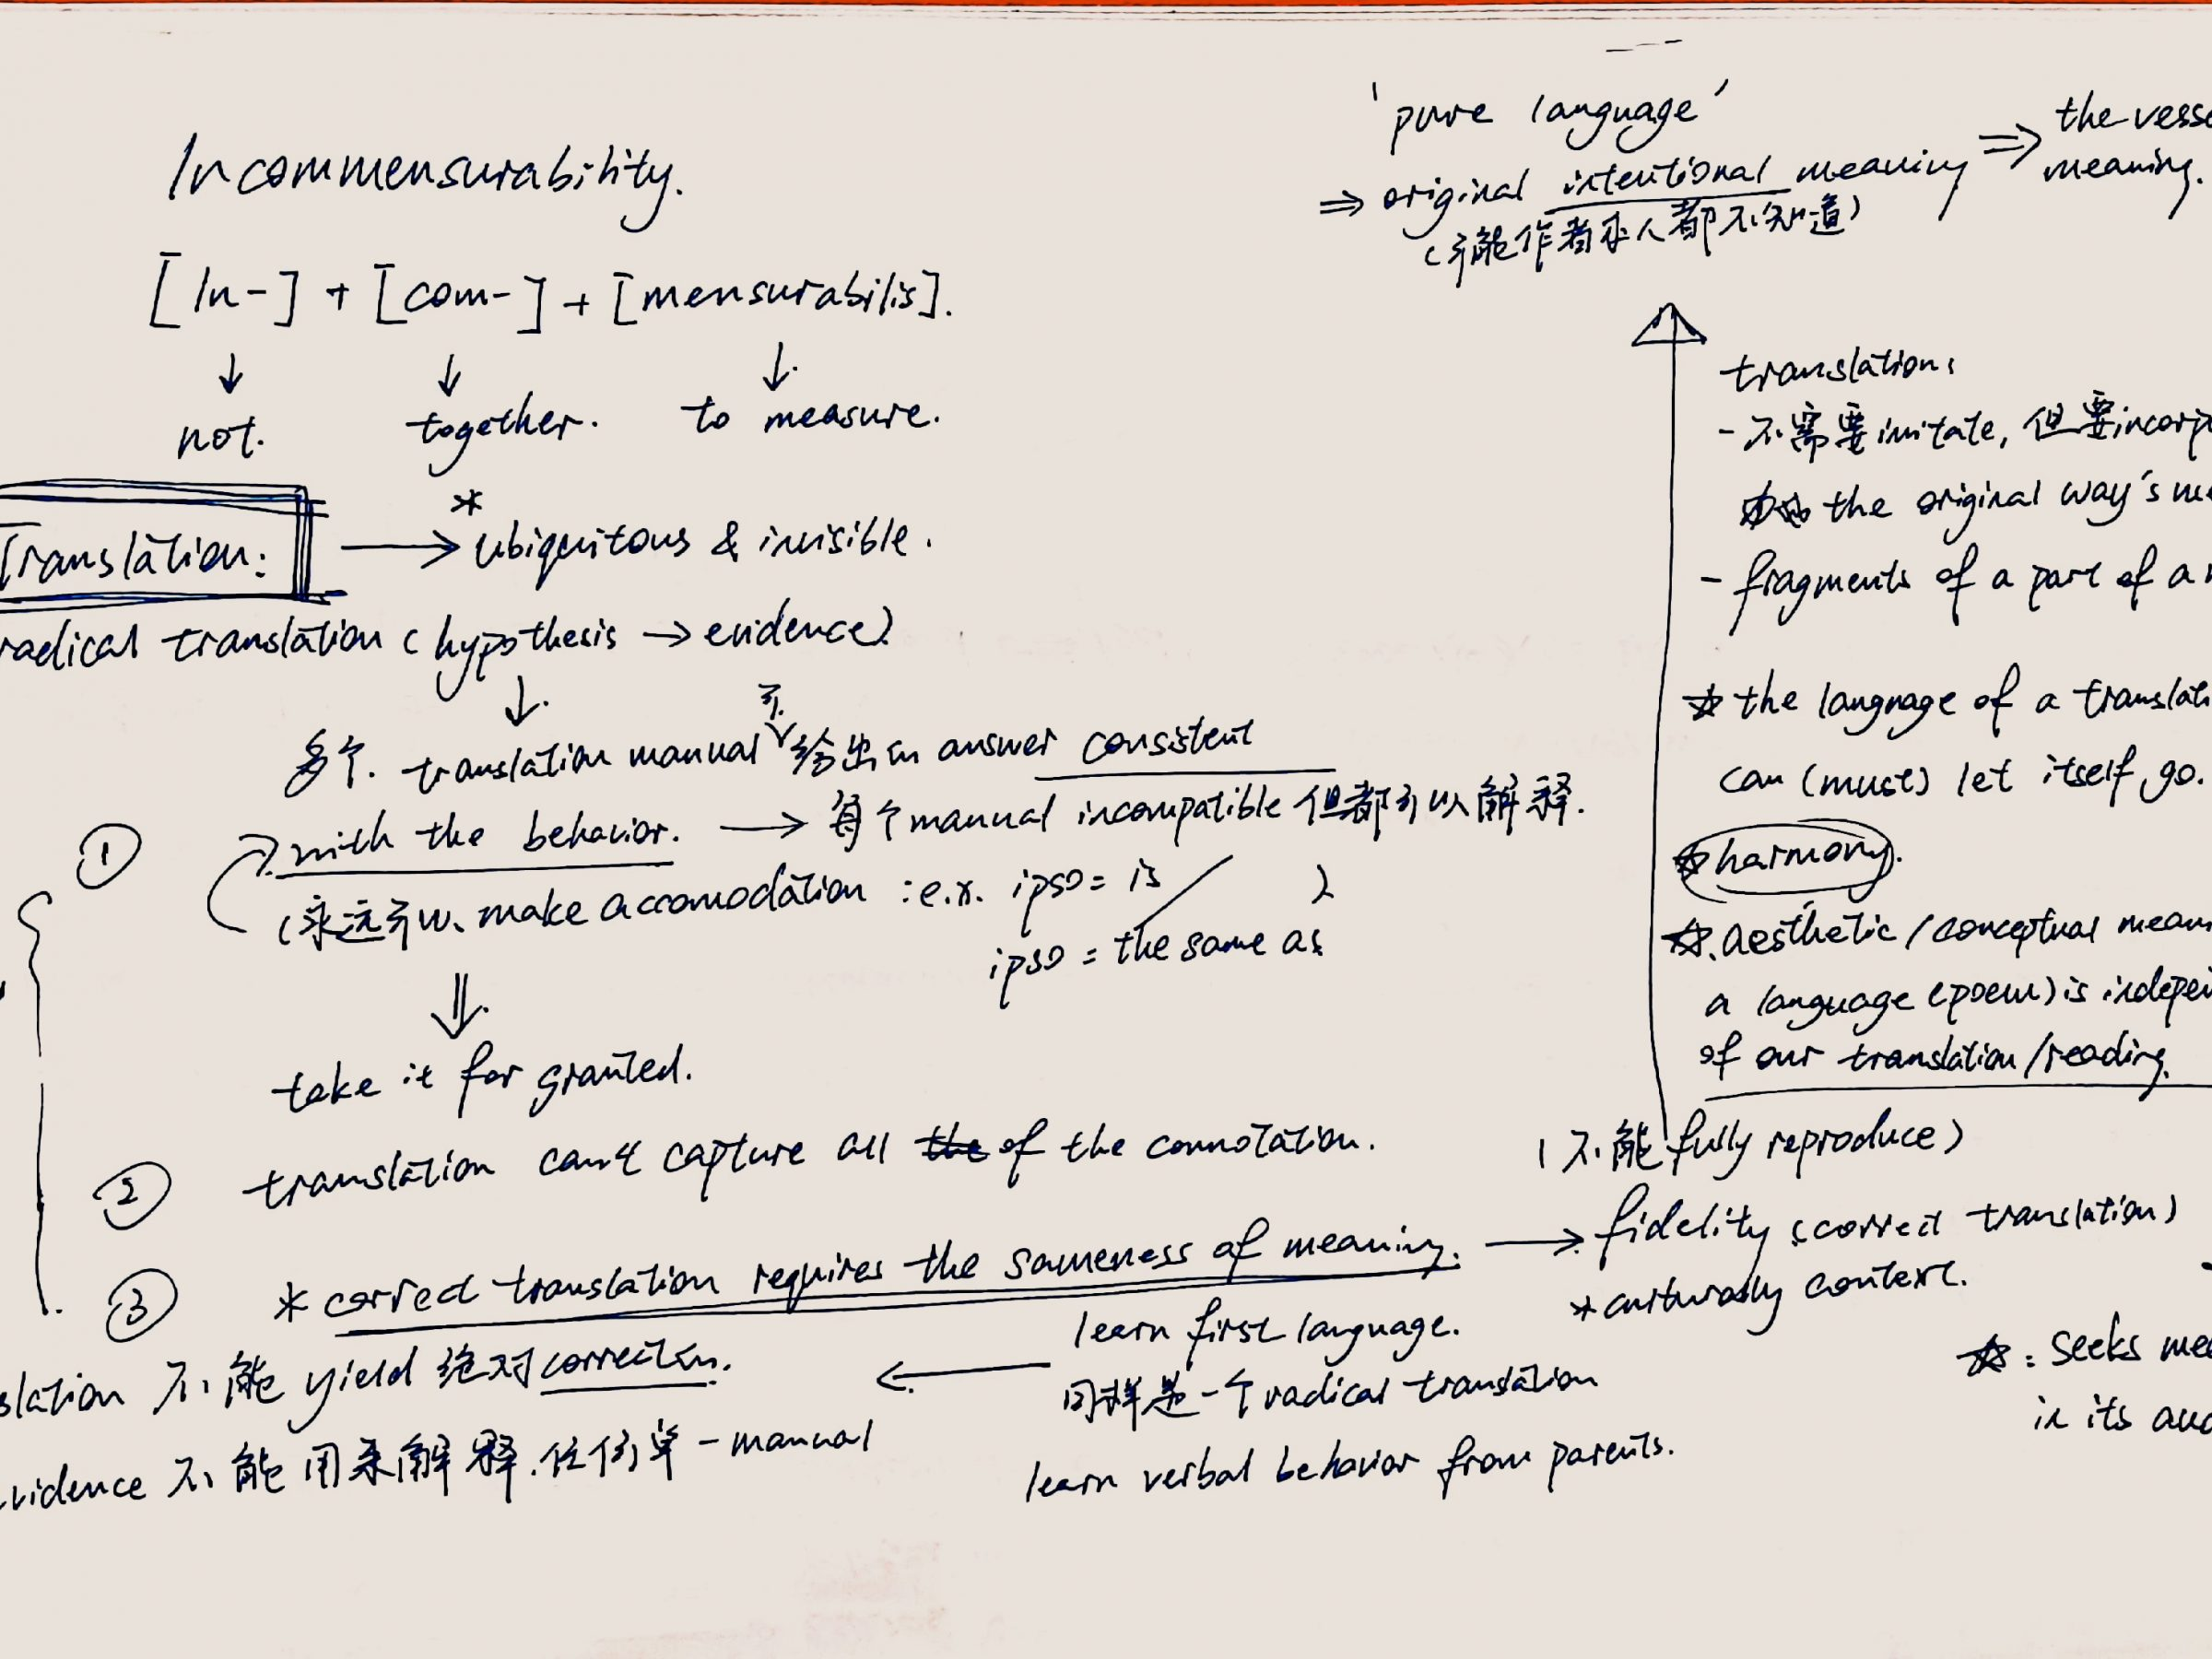 Incommensurability - Notes from Hum103